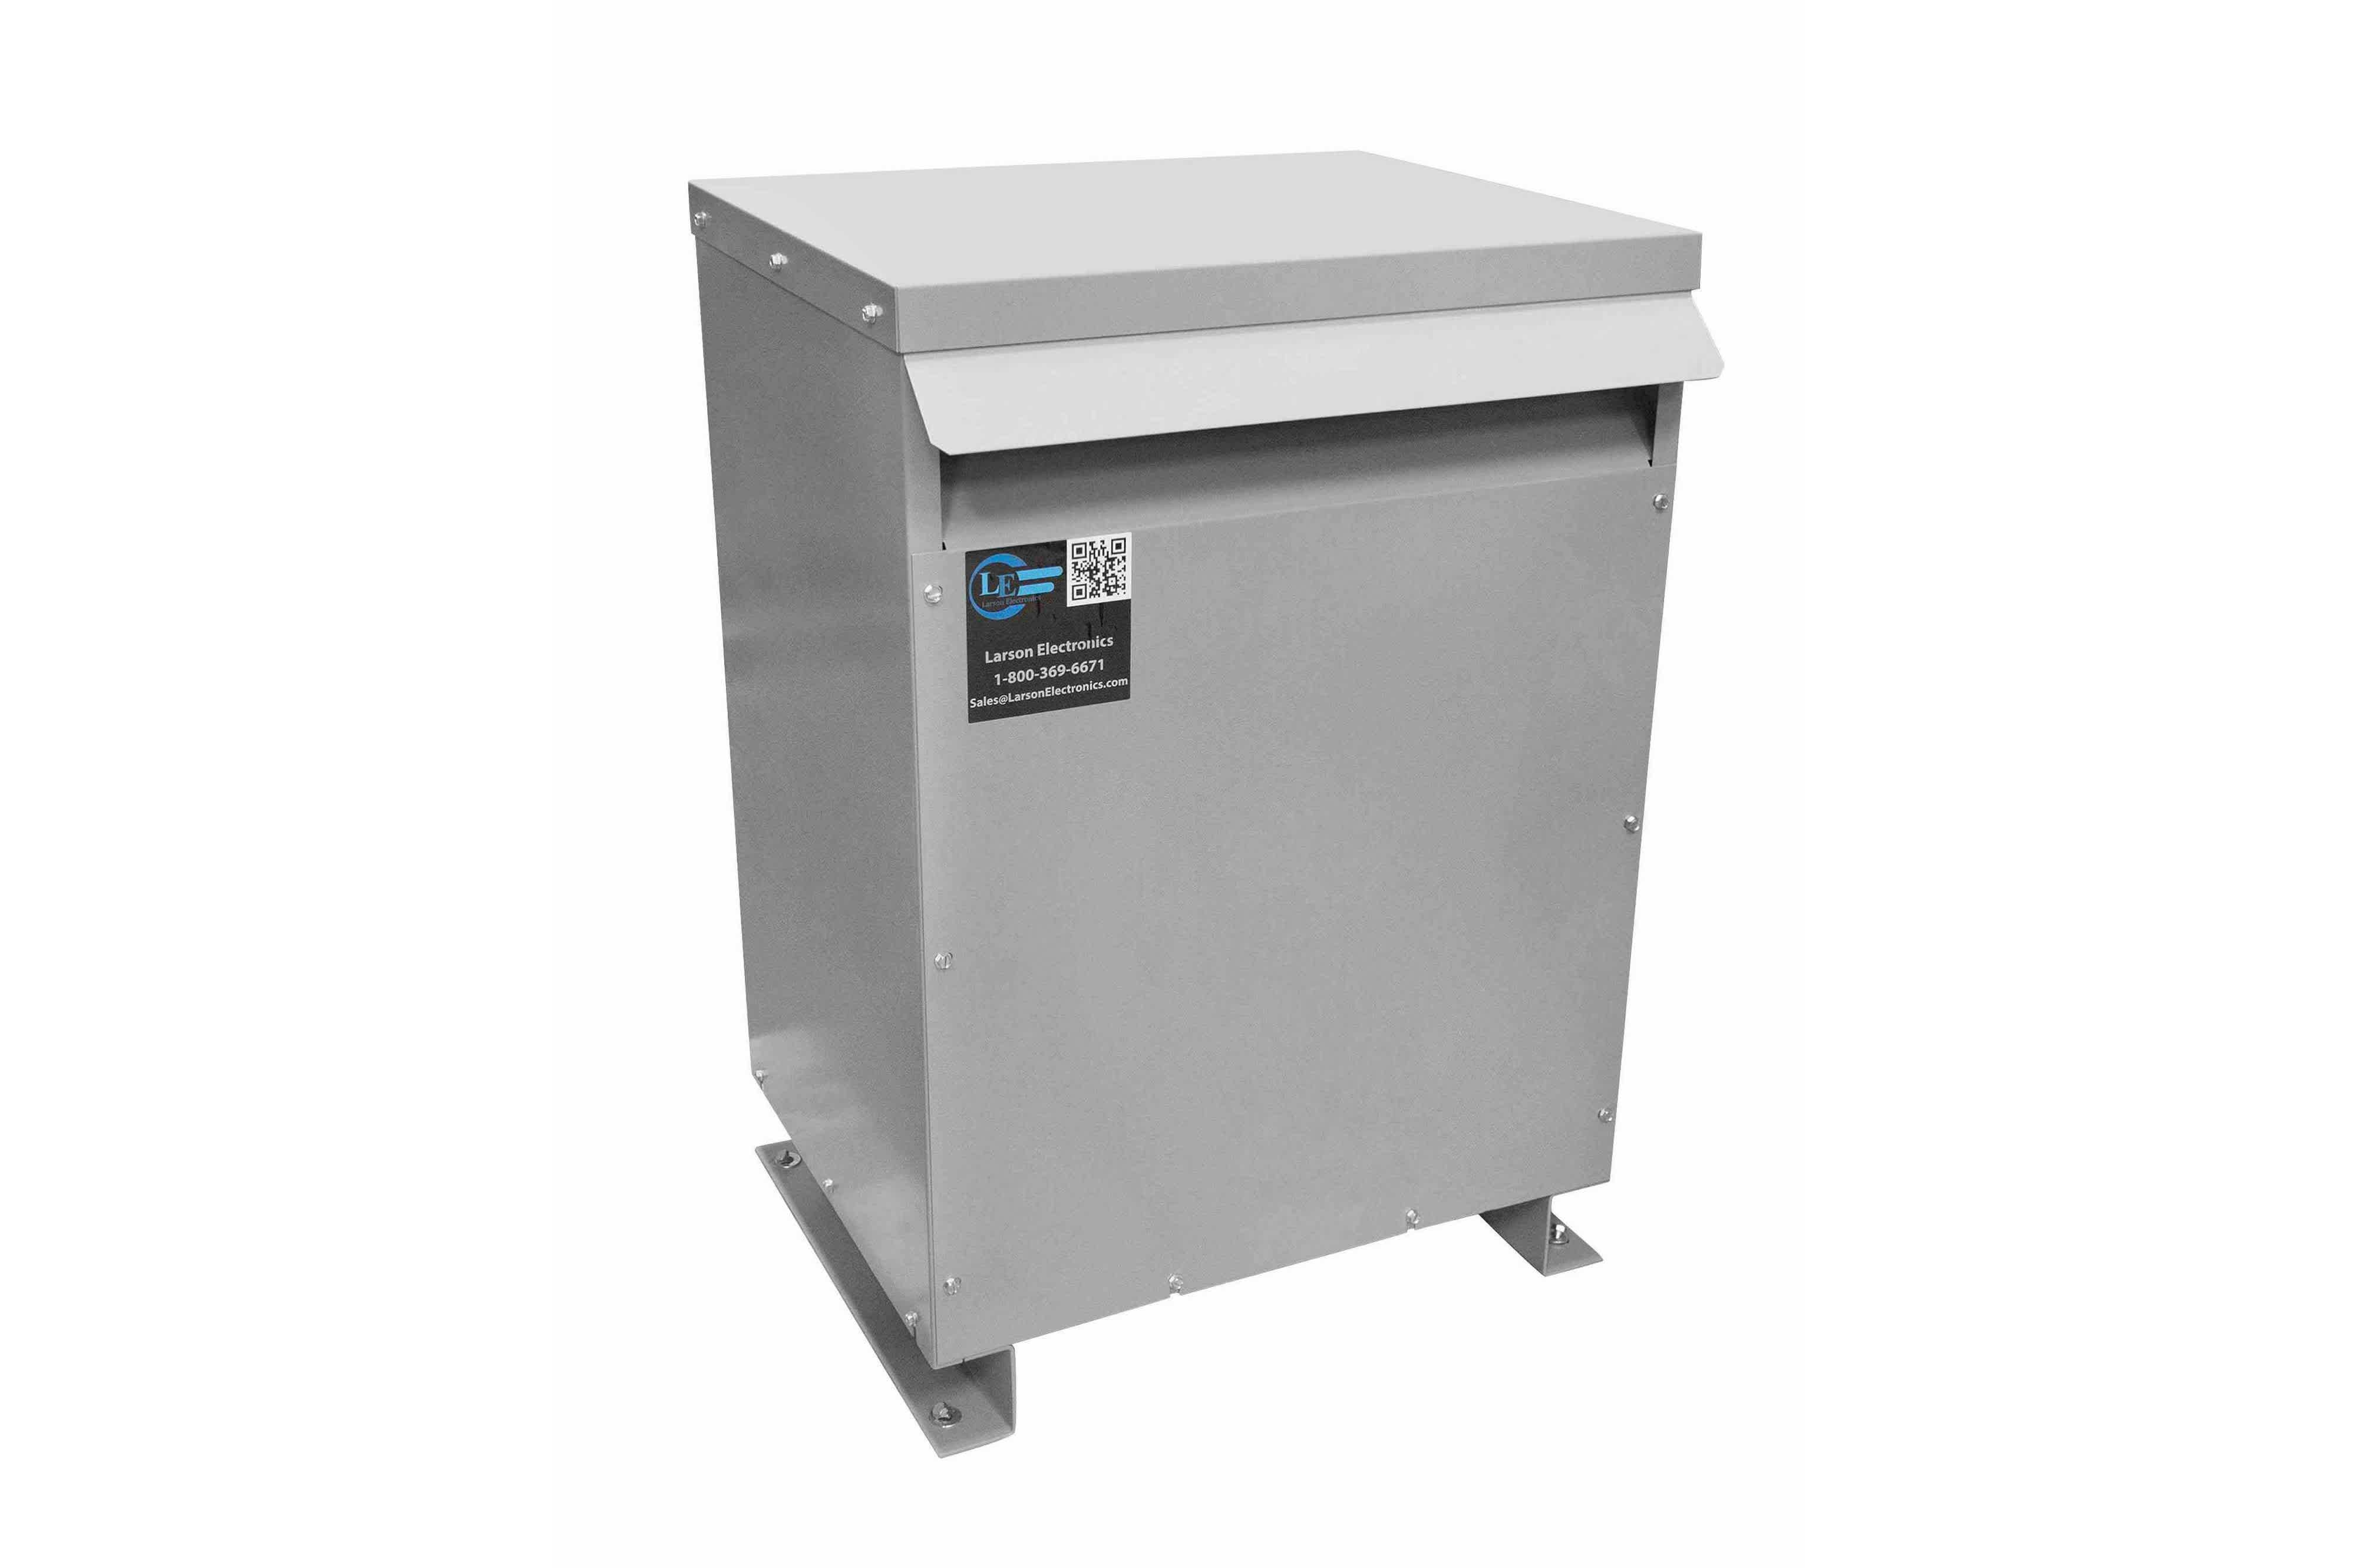 75 kVA 3PH Isolation Transformer, 415V Wye Primary, 600Y/347 Wye-N Secondary, N3R, Ventilated, 60 Hz